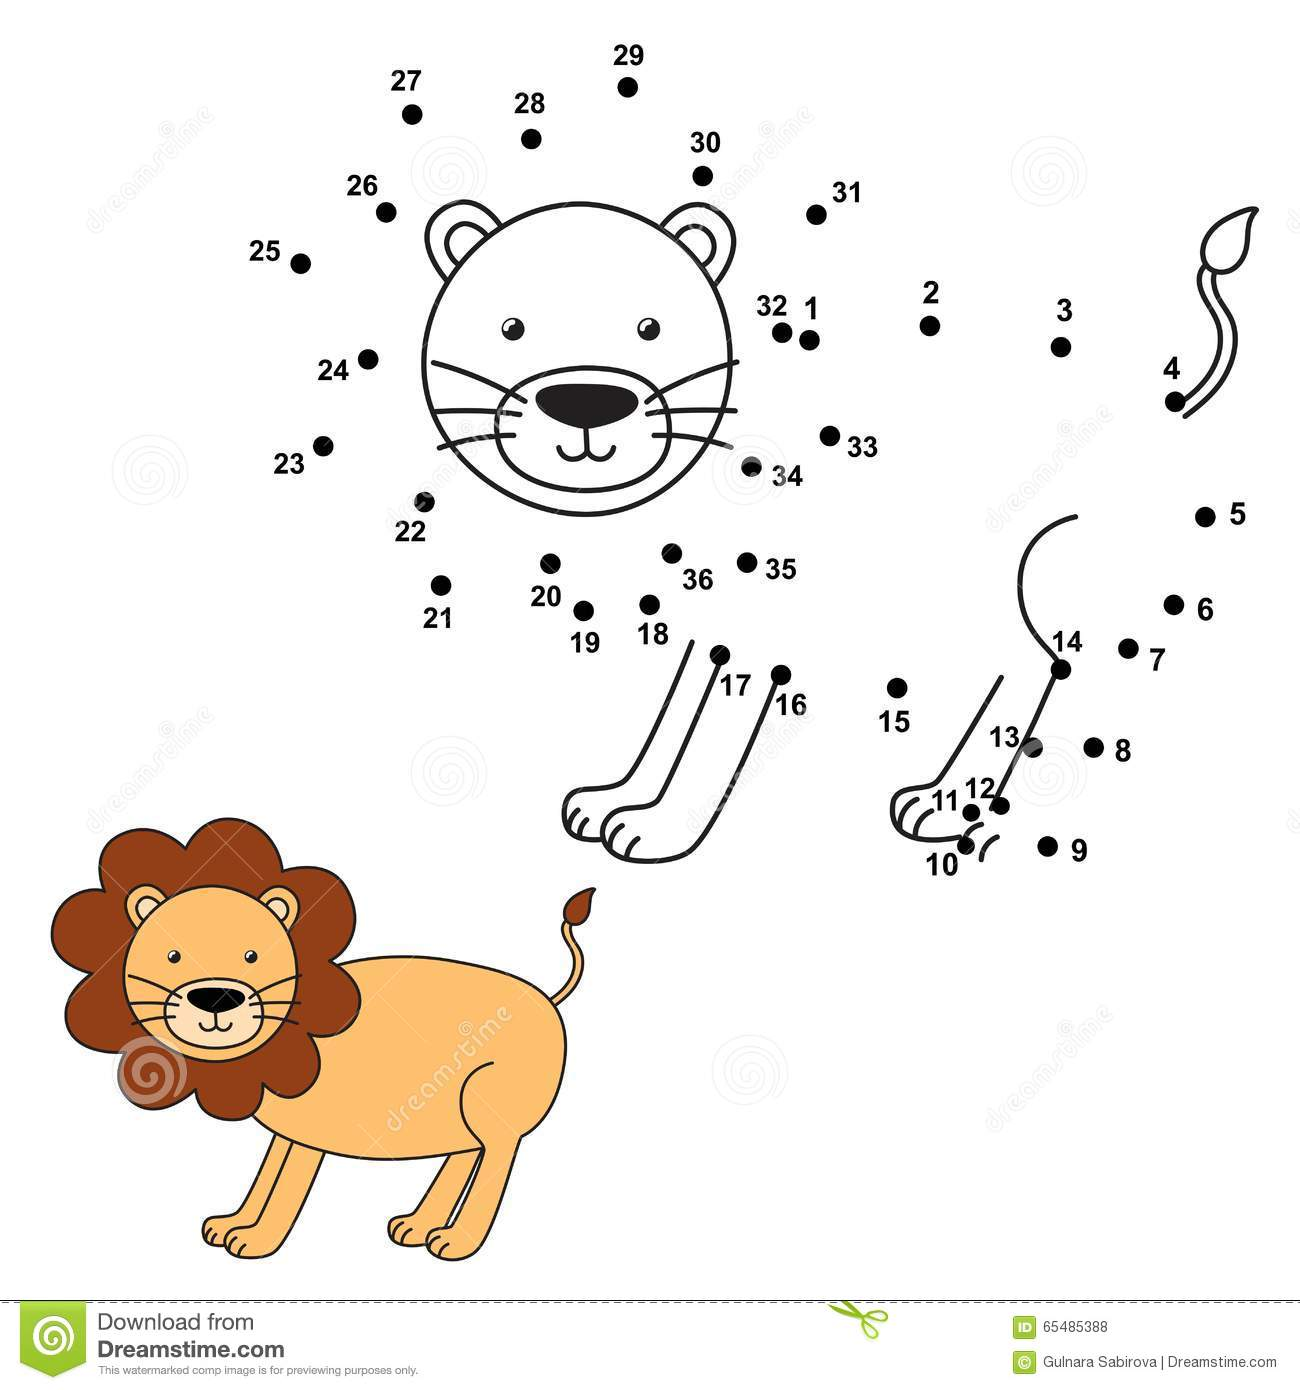 Connect The Dots To Draw The Cute Lion And Color It